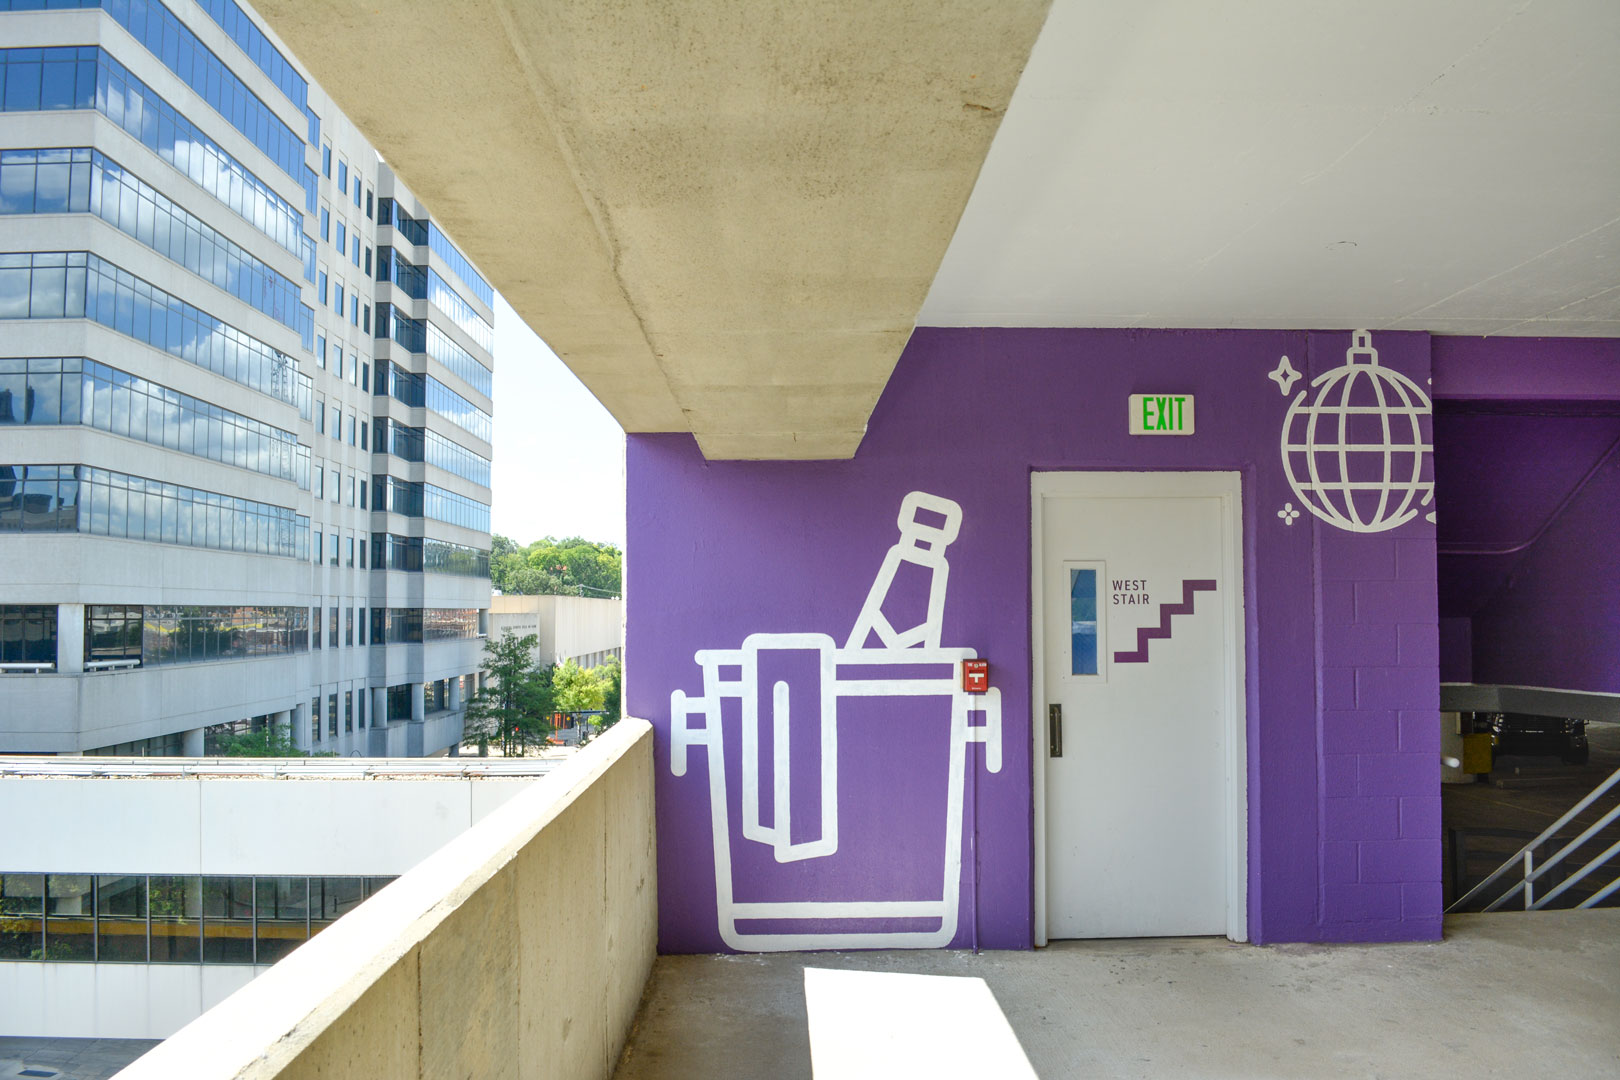 Painted environmental graphics in the 22nd street BJCC parking deck